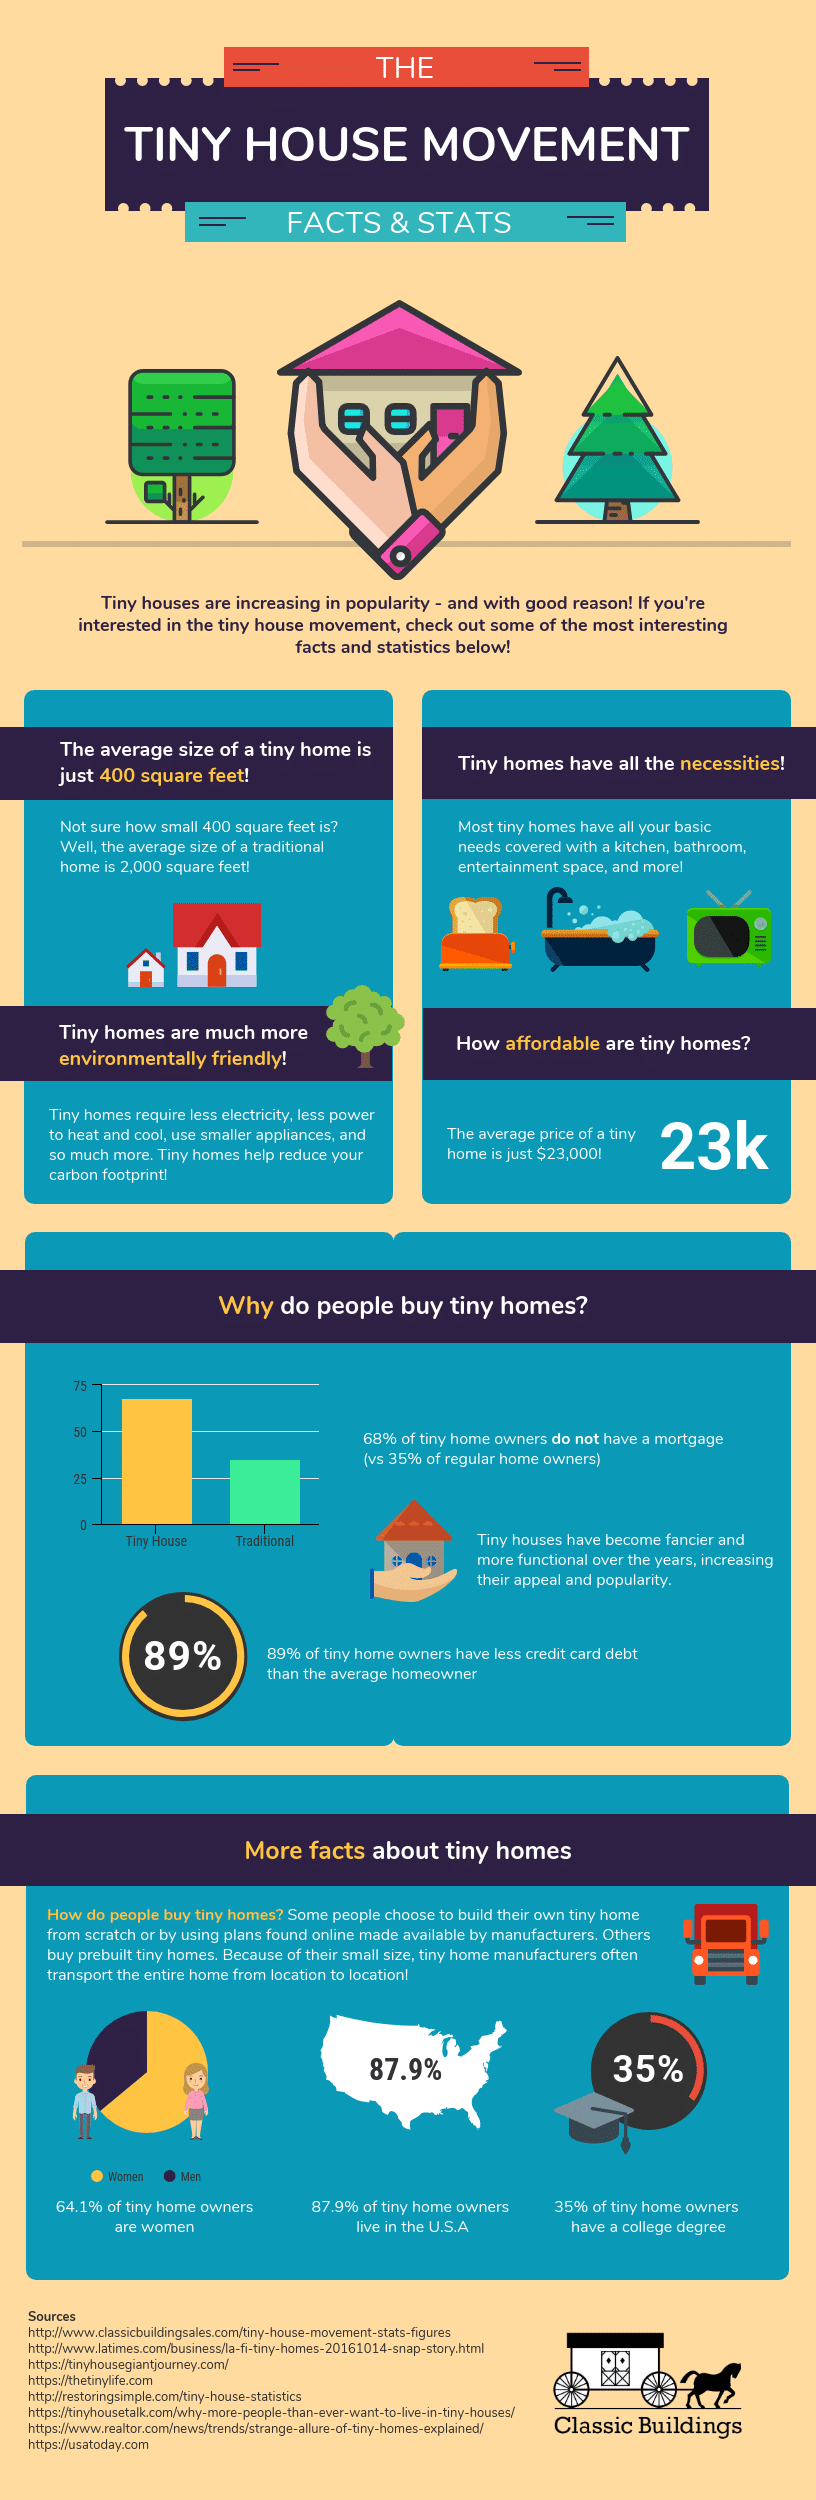 Tiny House Movement Infographic